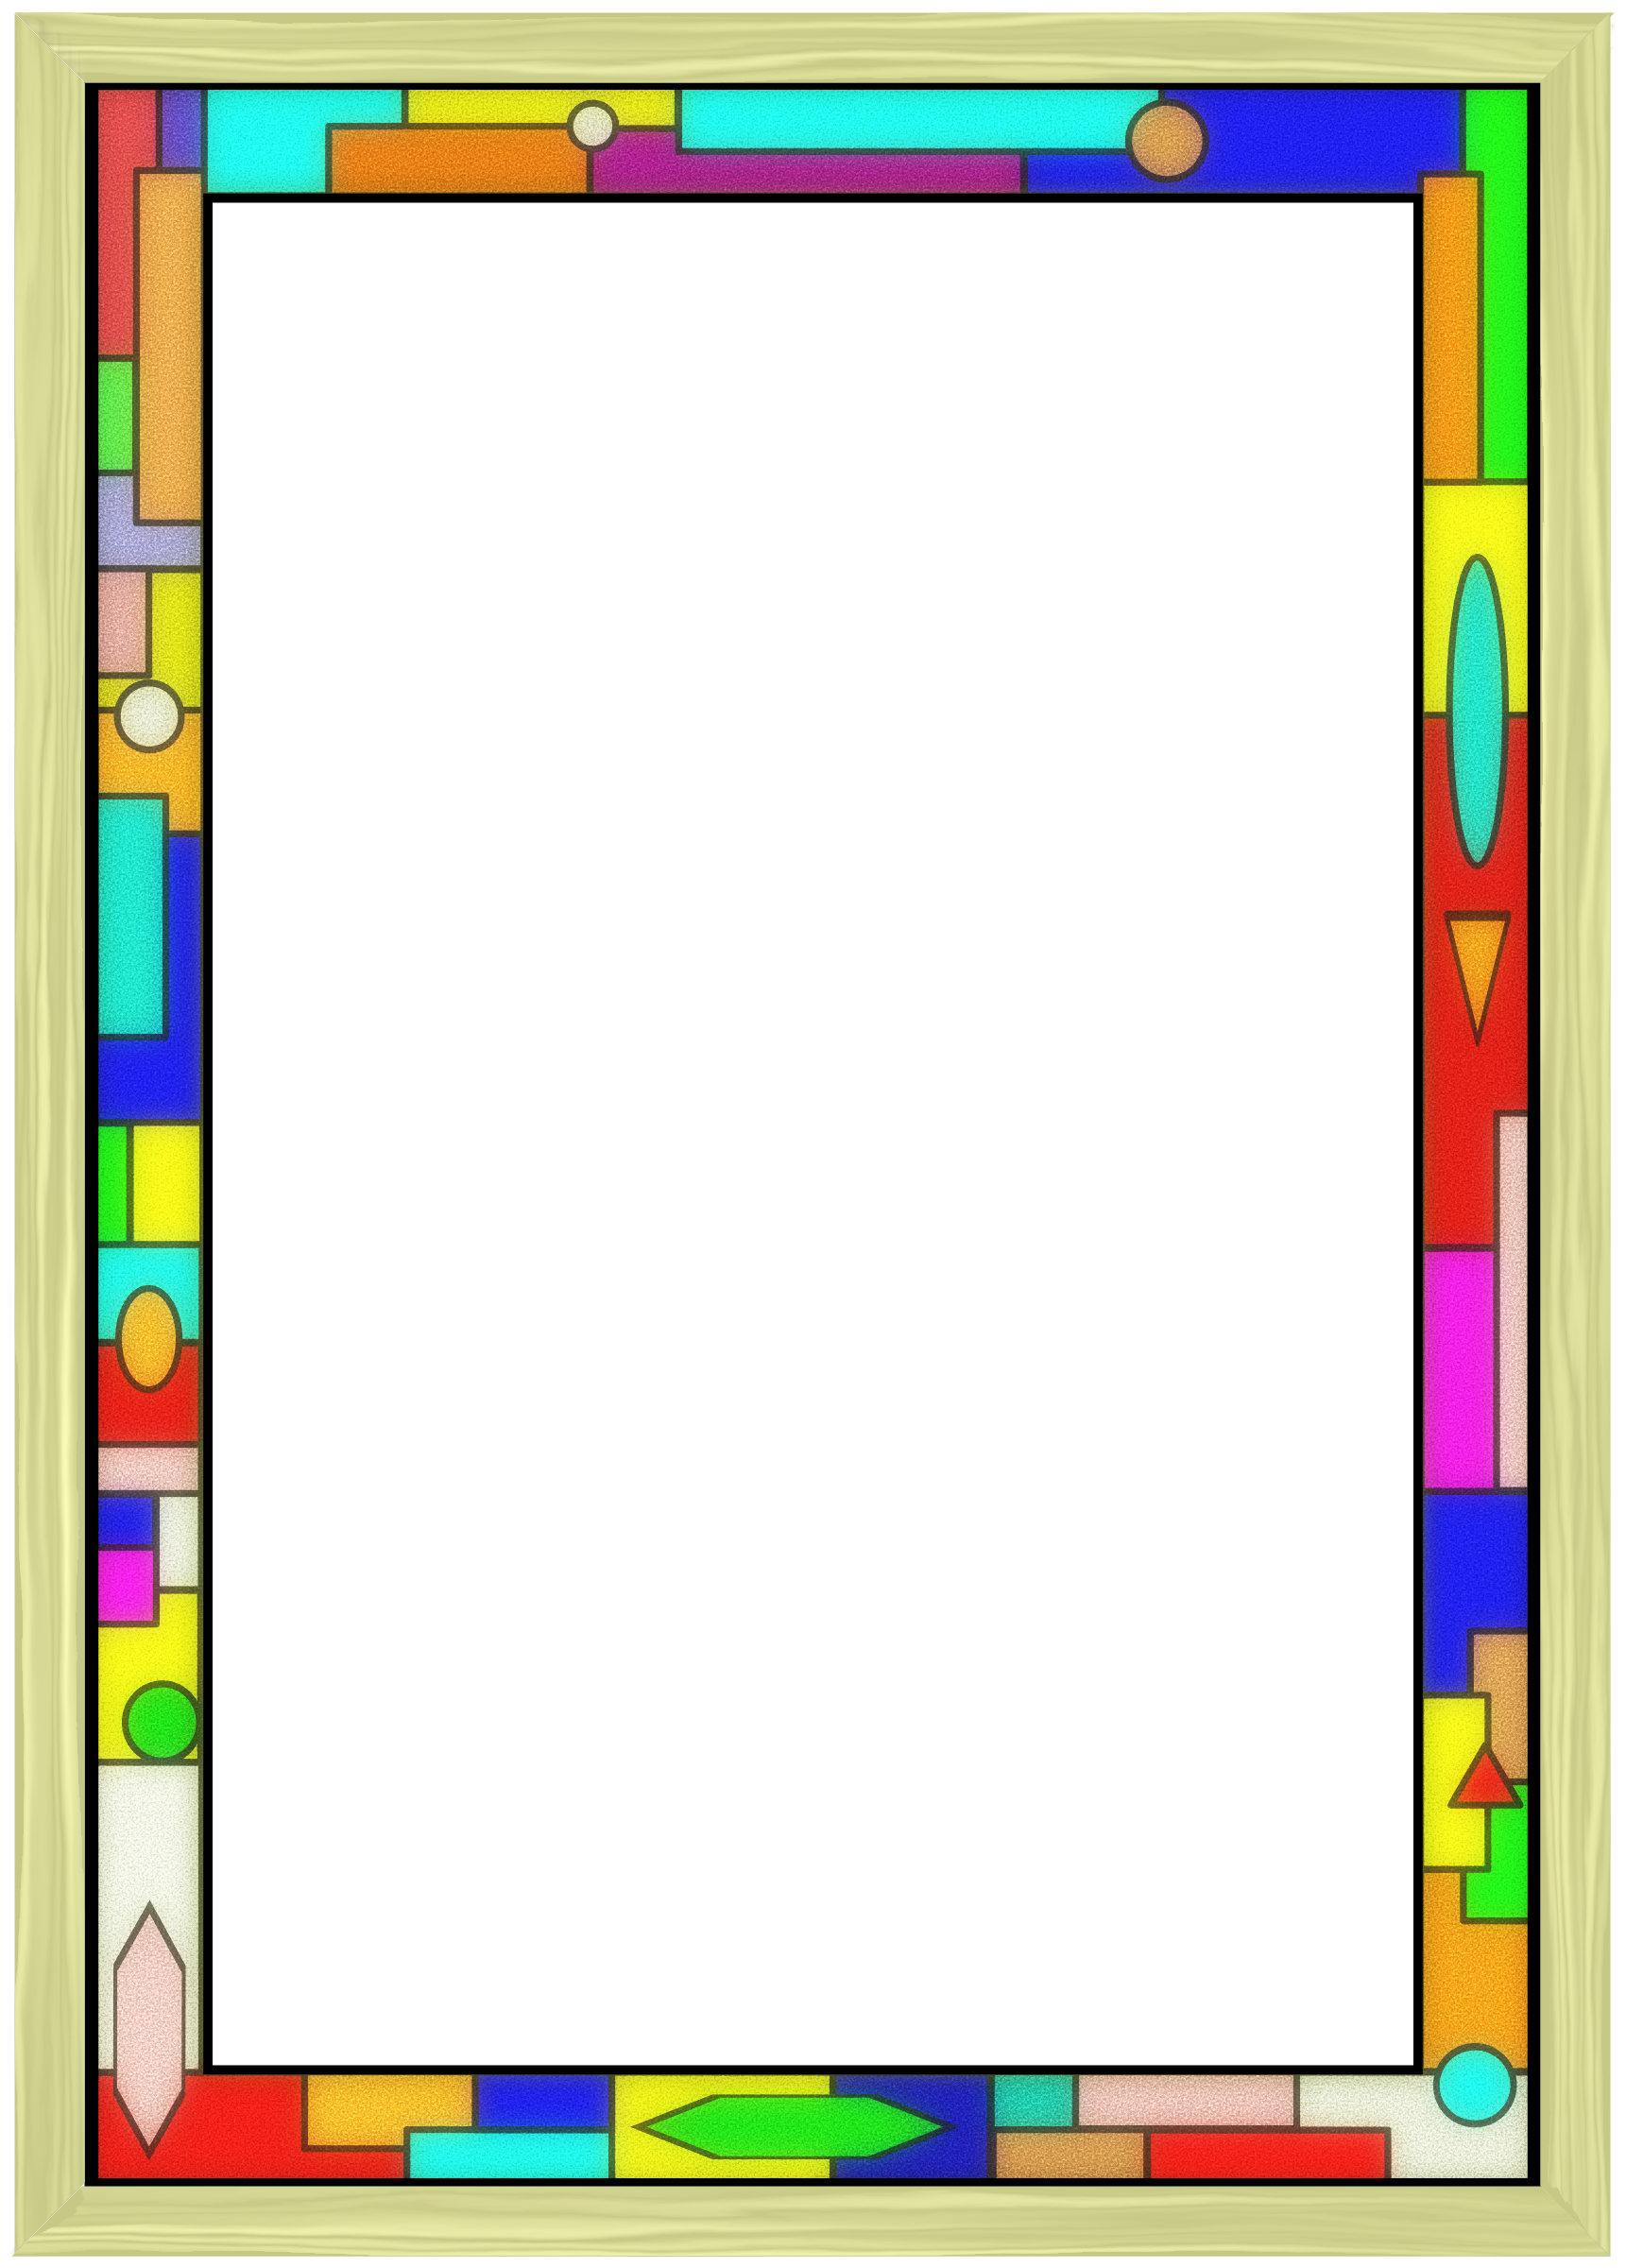 Fun borders png. Clipart stained glass border